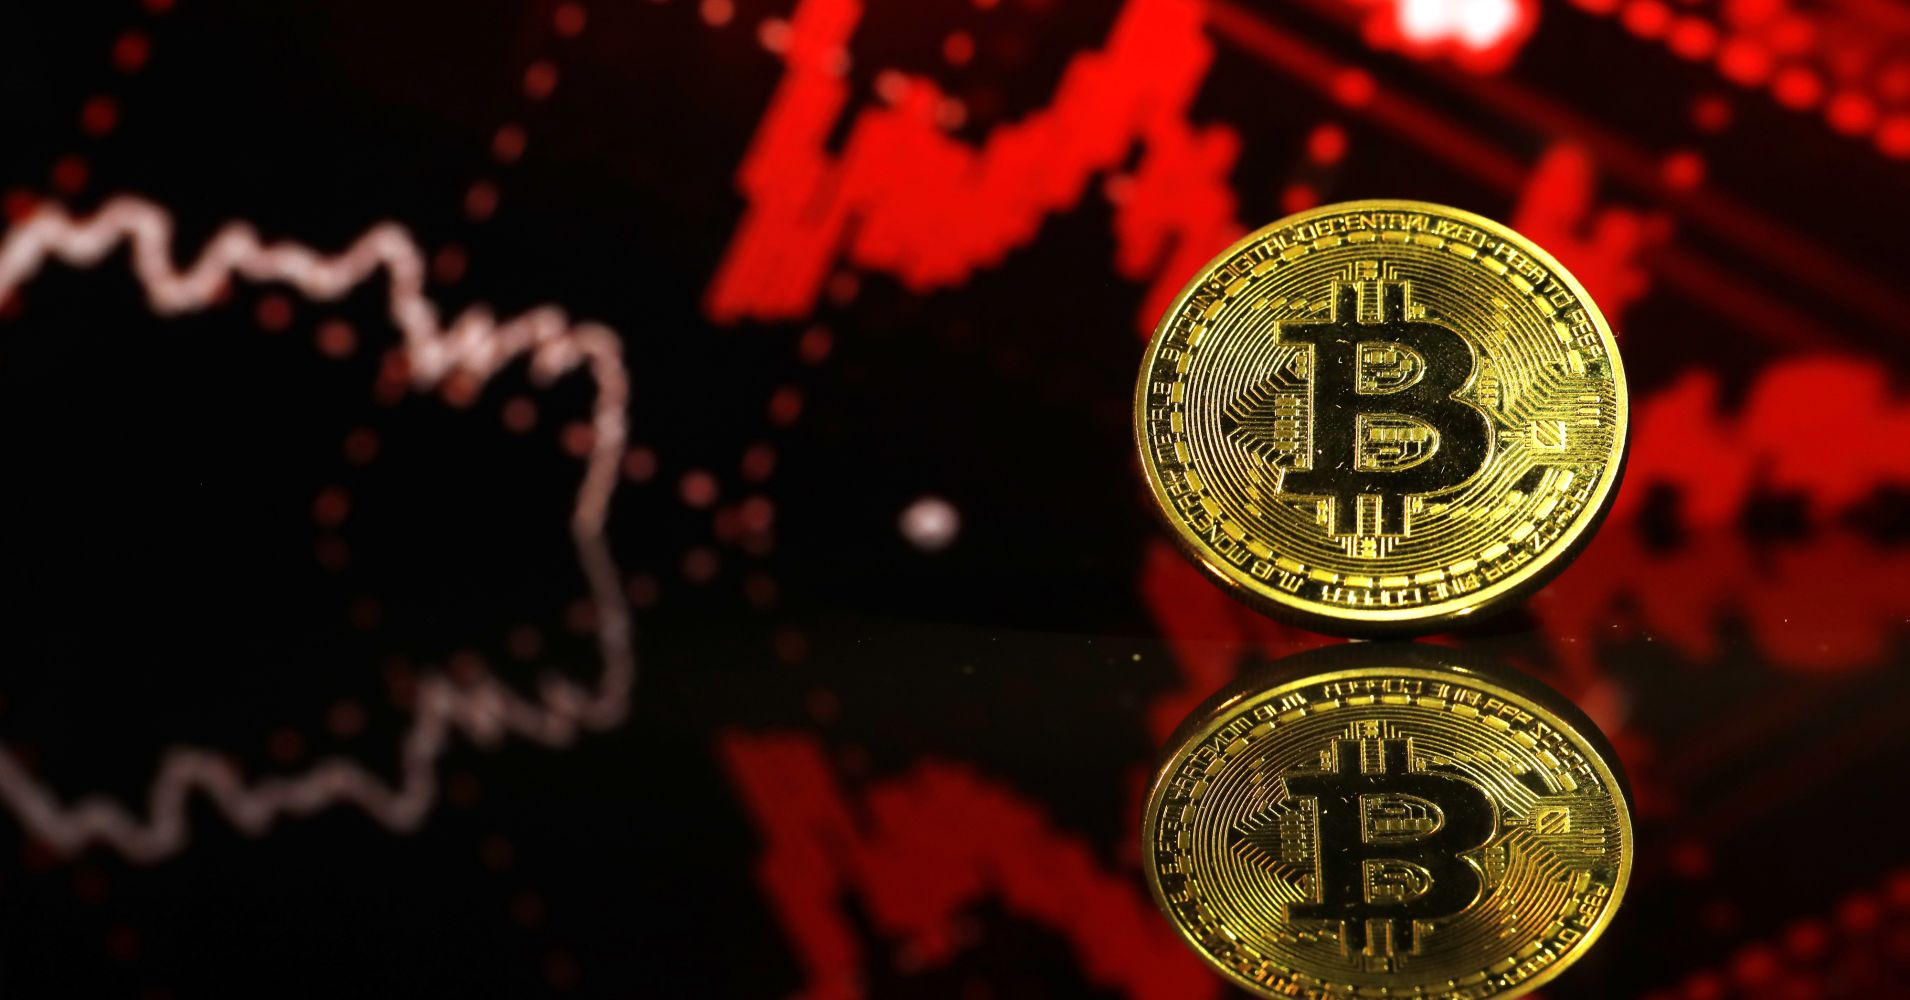 'I come to bury Bitcoin, not to praise it': UBS